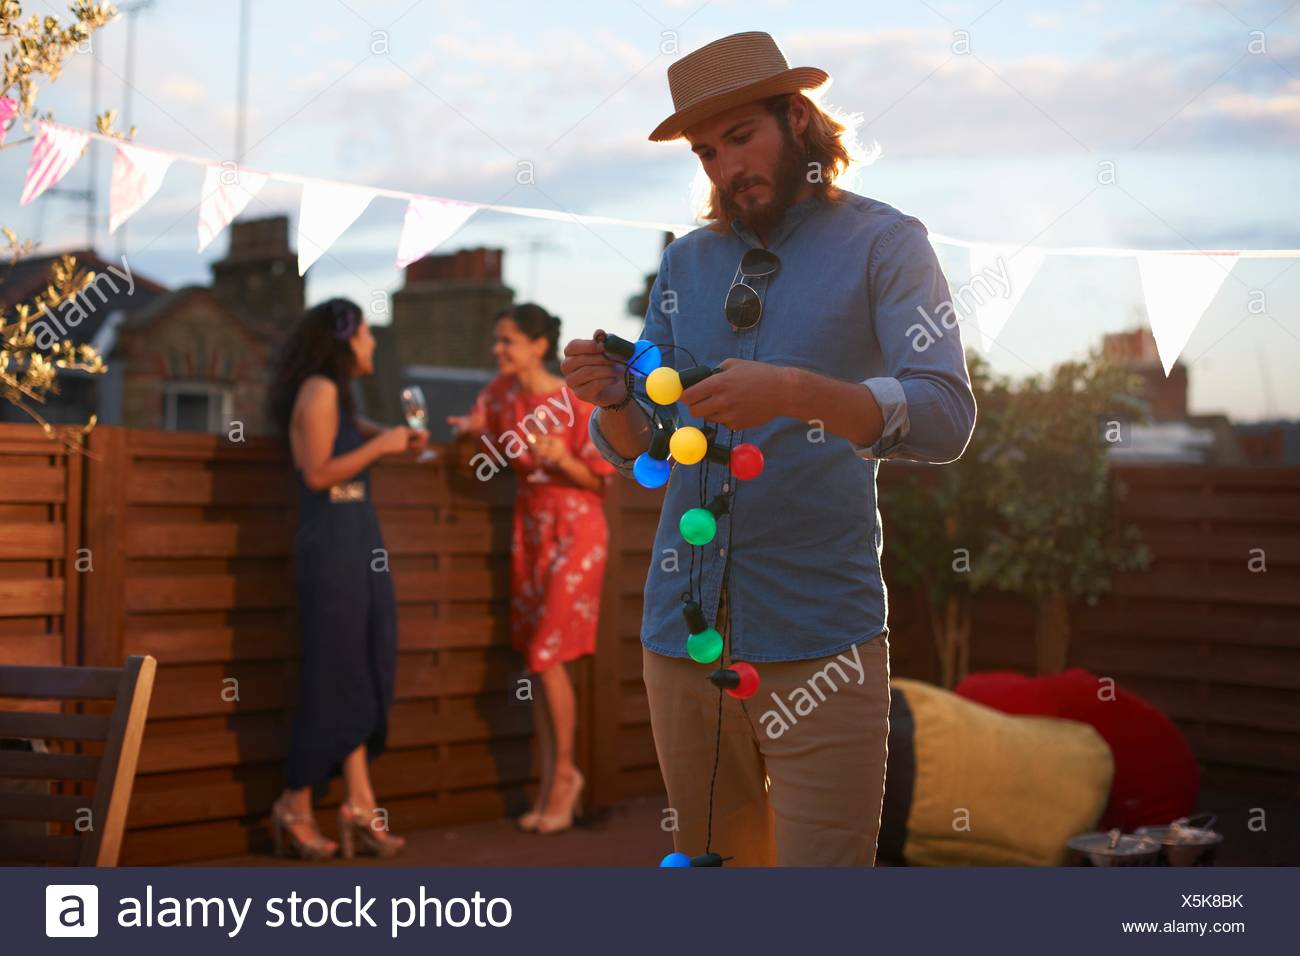 Man hanging garden lights for early evening party - Stock Image